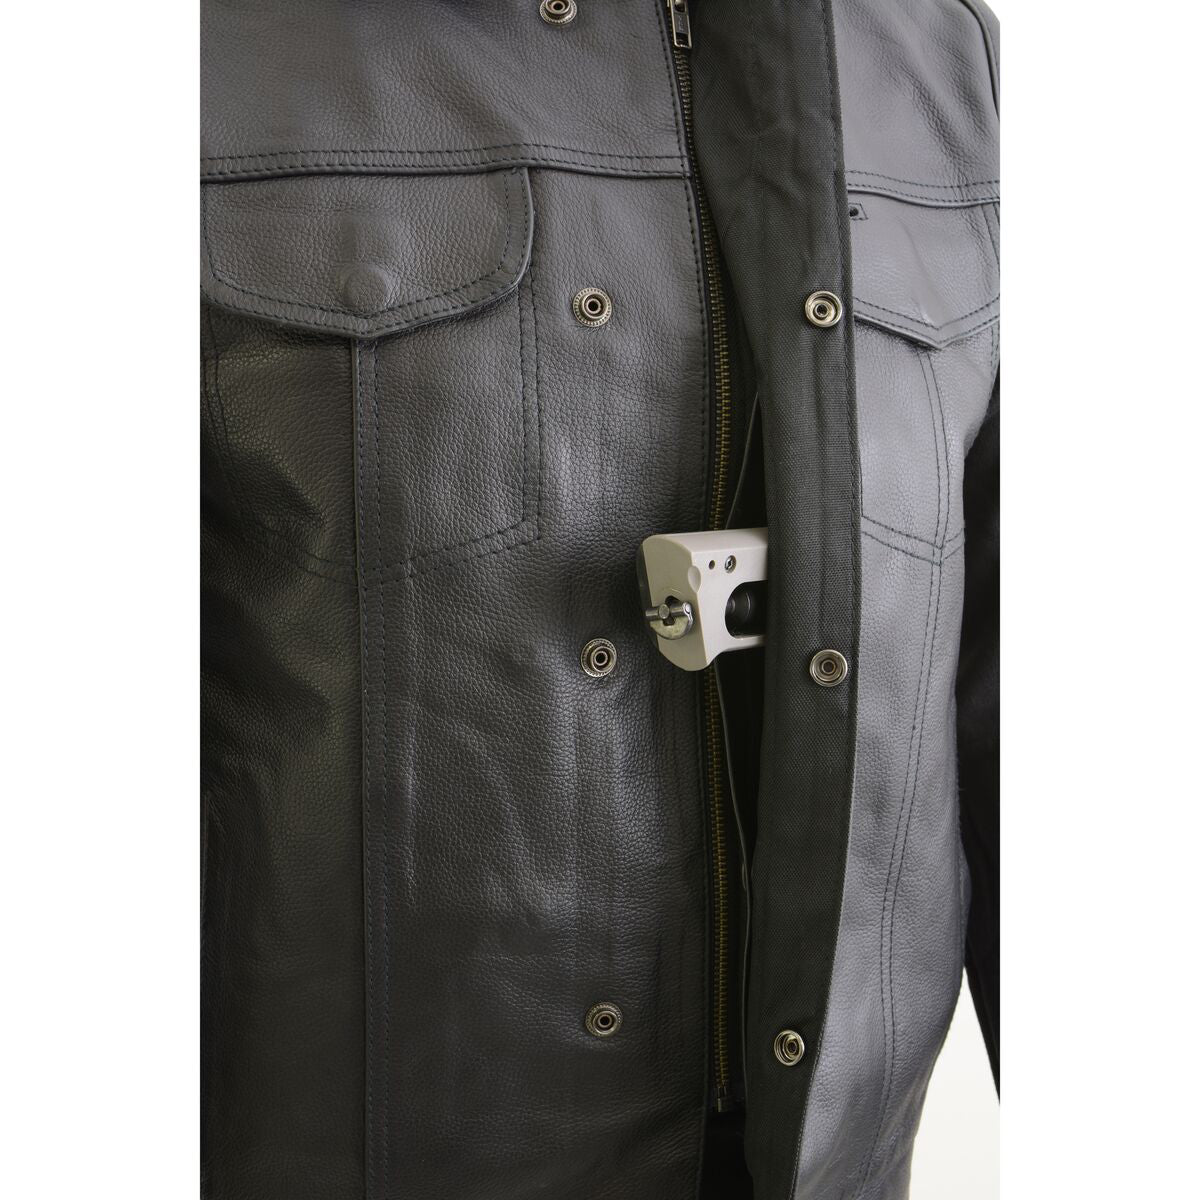 Milwaukee Leather LKM3714 Men's Black Leather Club Style Zipper Front